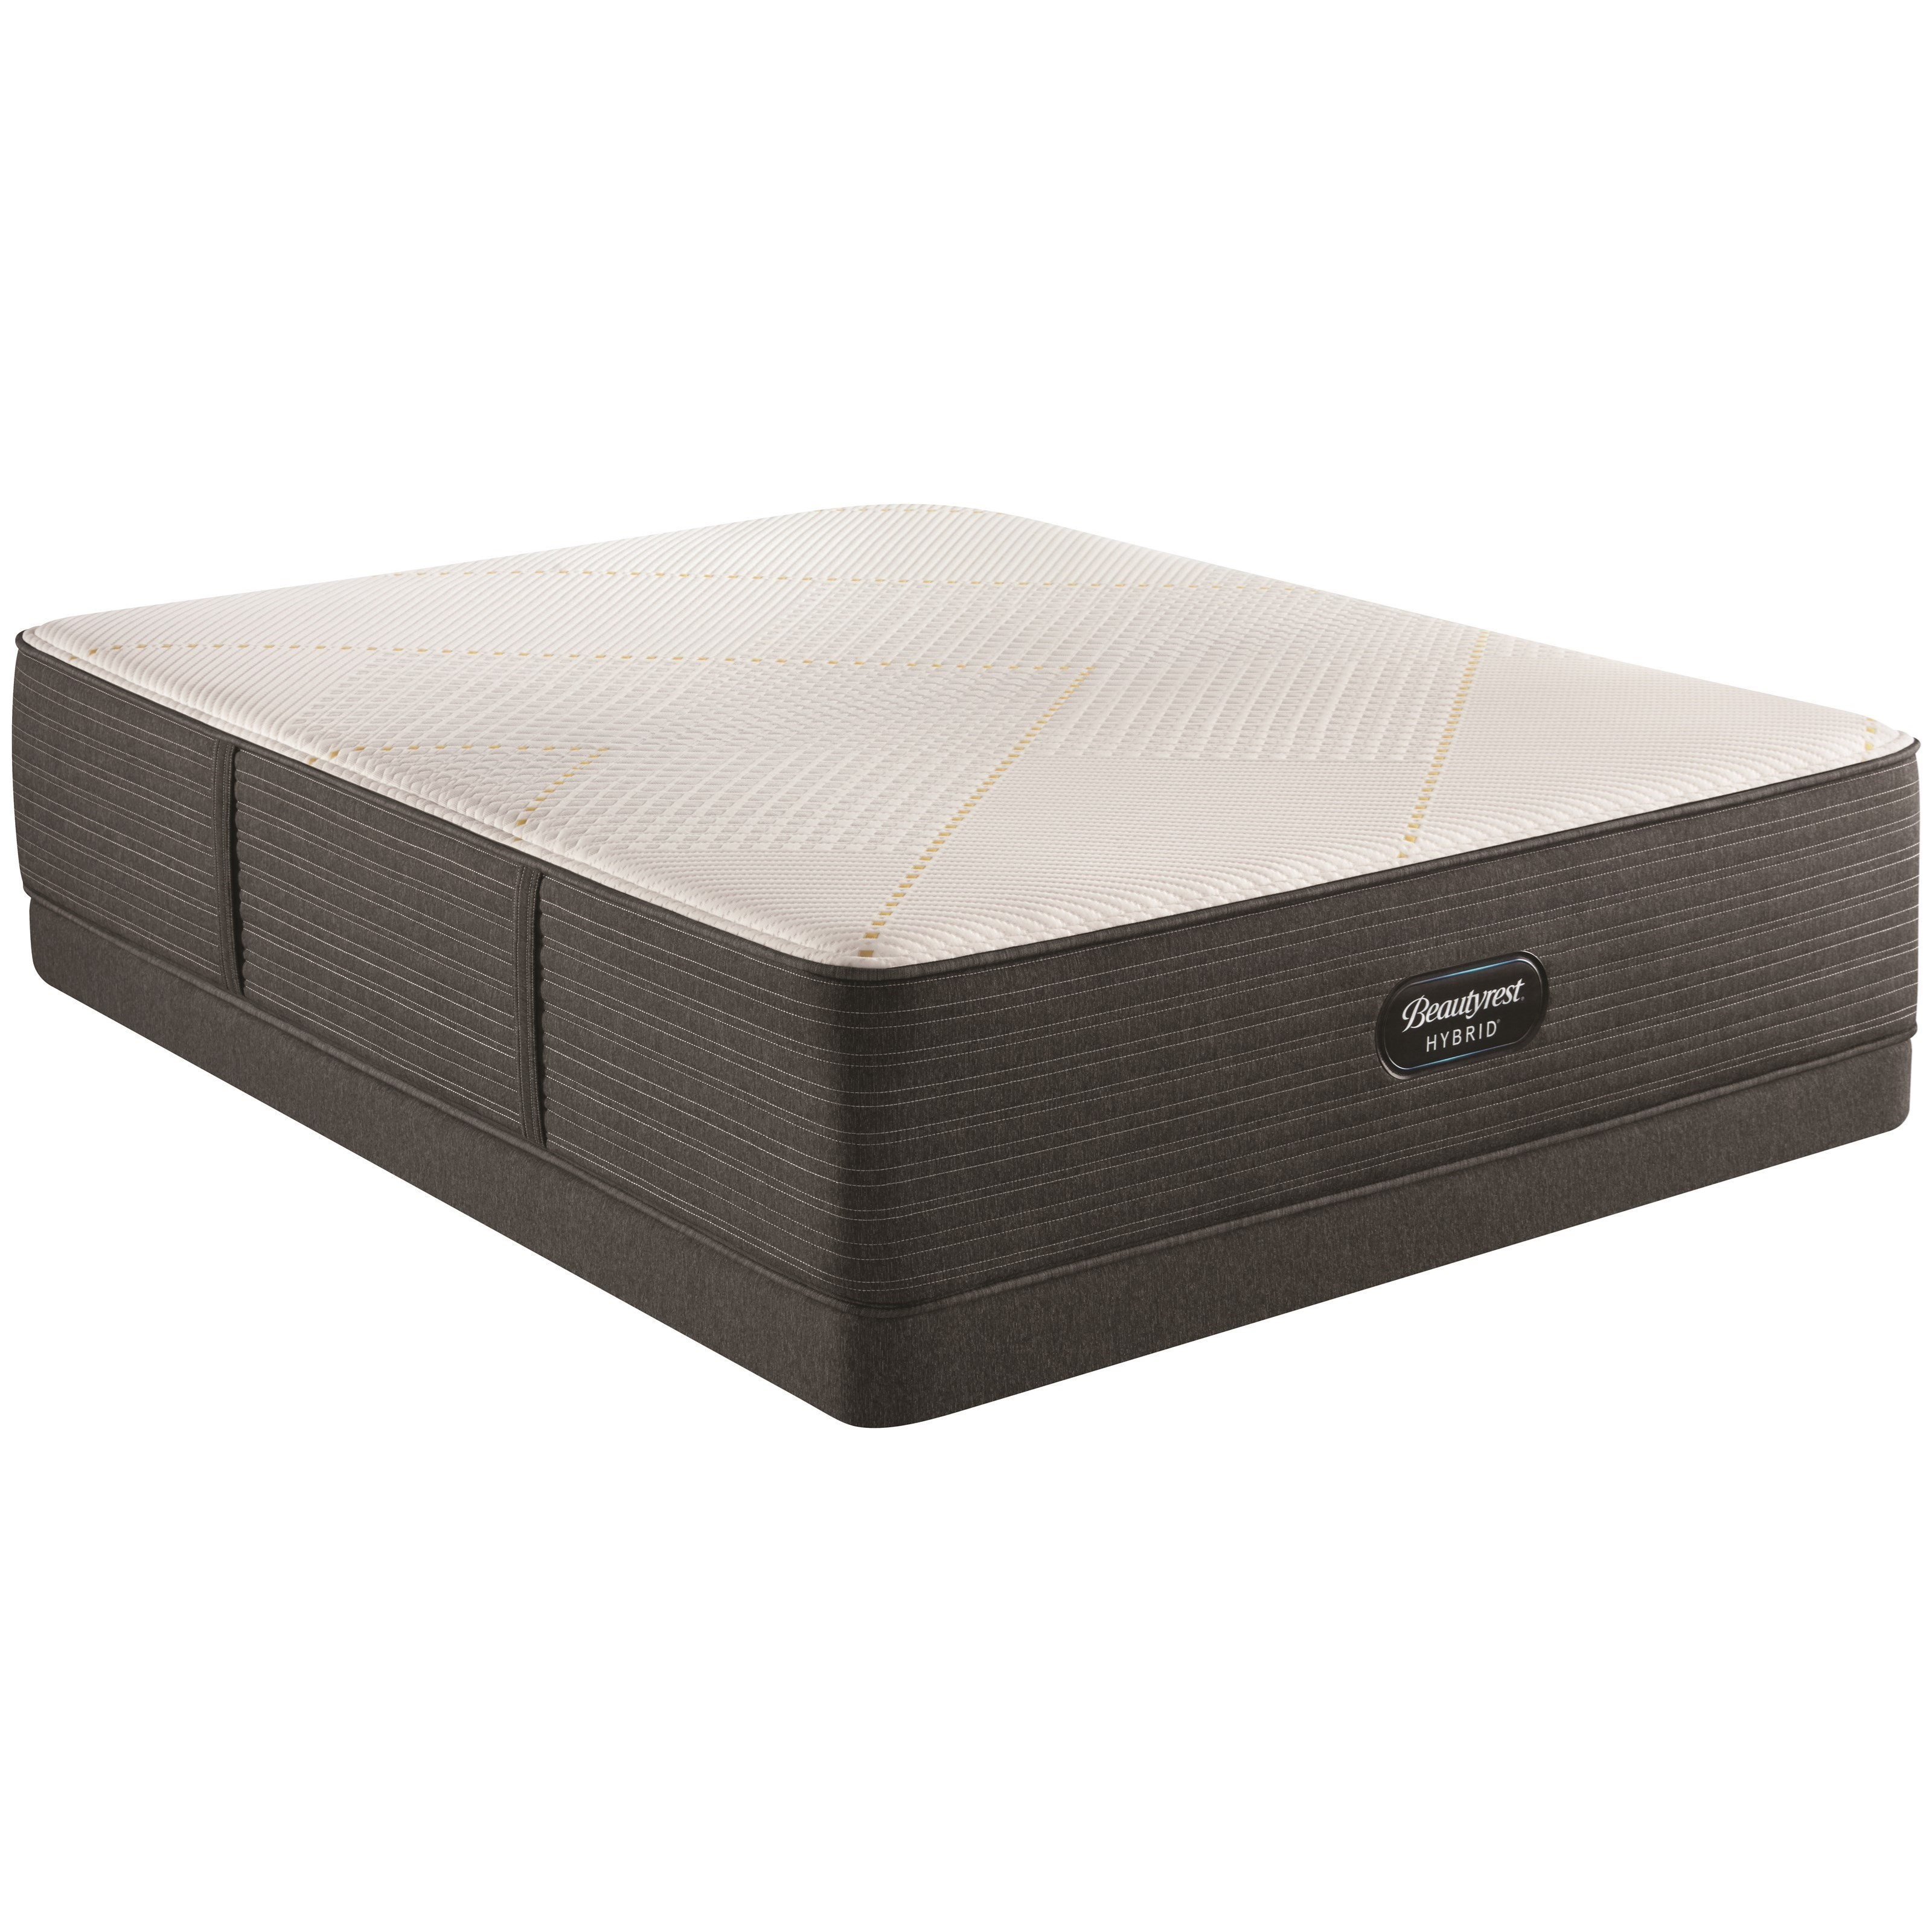 """BRX3000IM Medium Firm Full 14 1/2"""" Hybrid Low Profile Set by Beautyrest at Rotmans"""